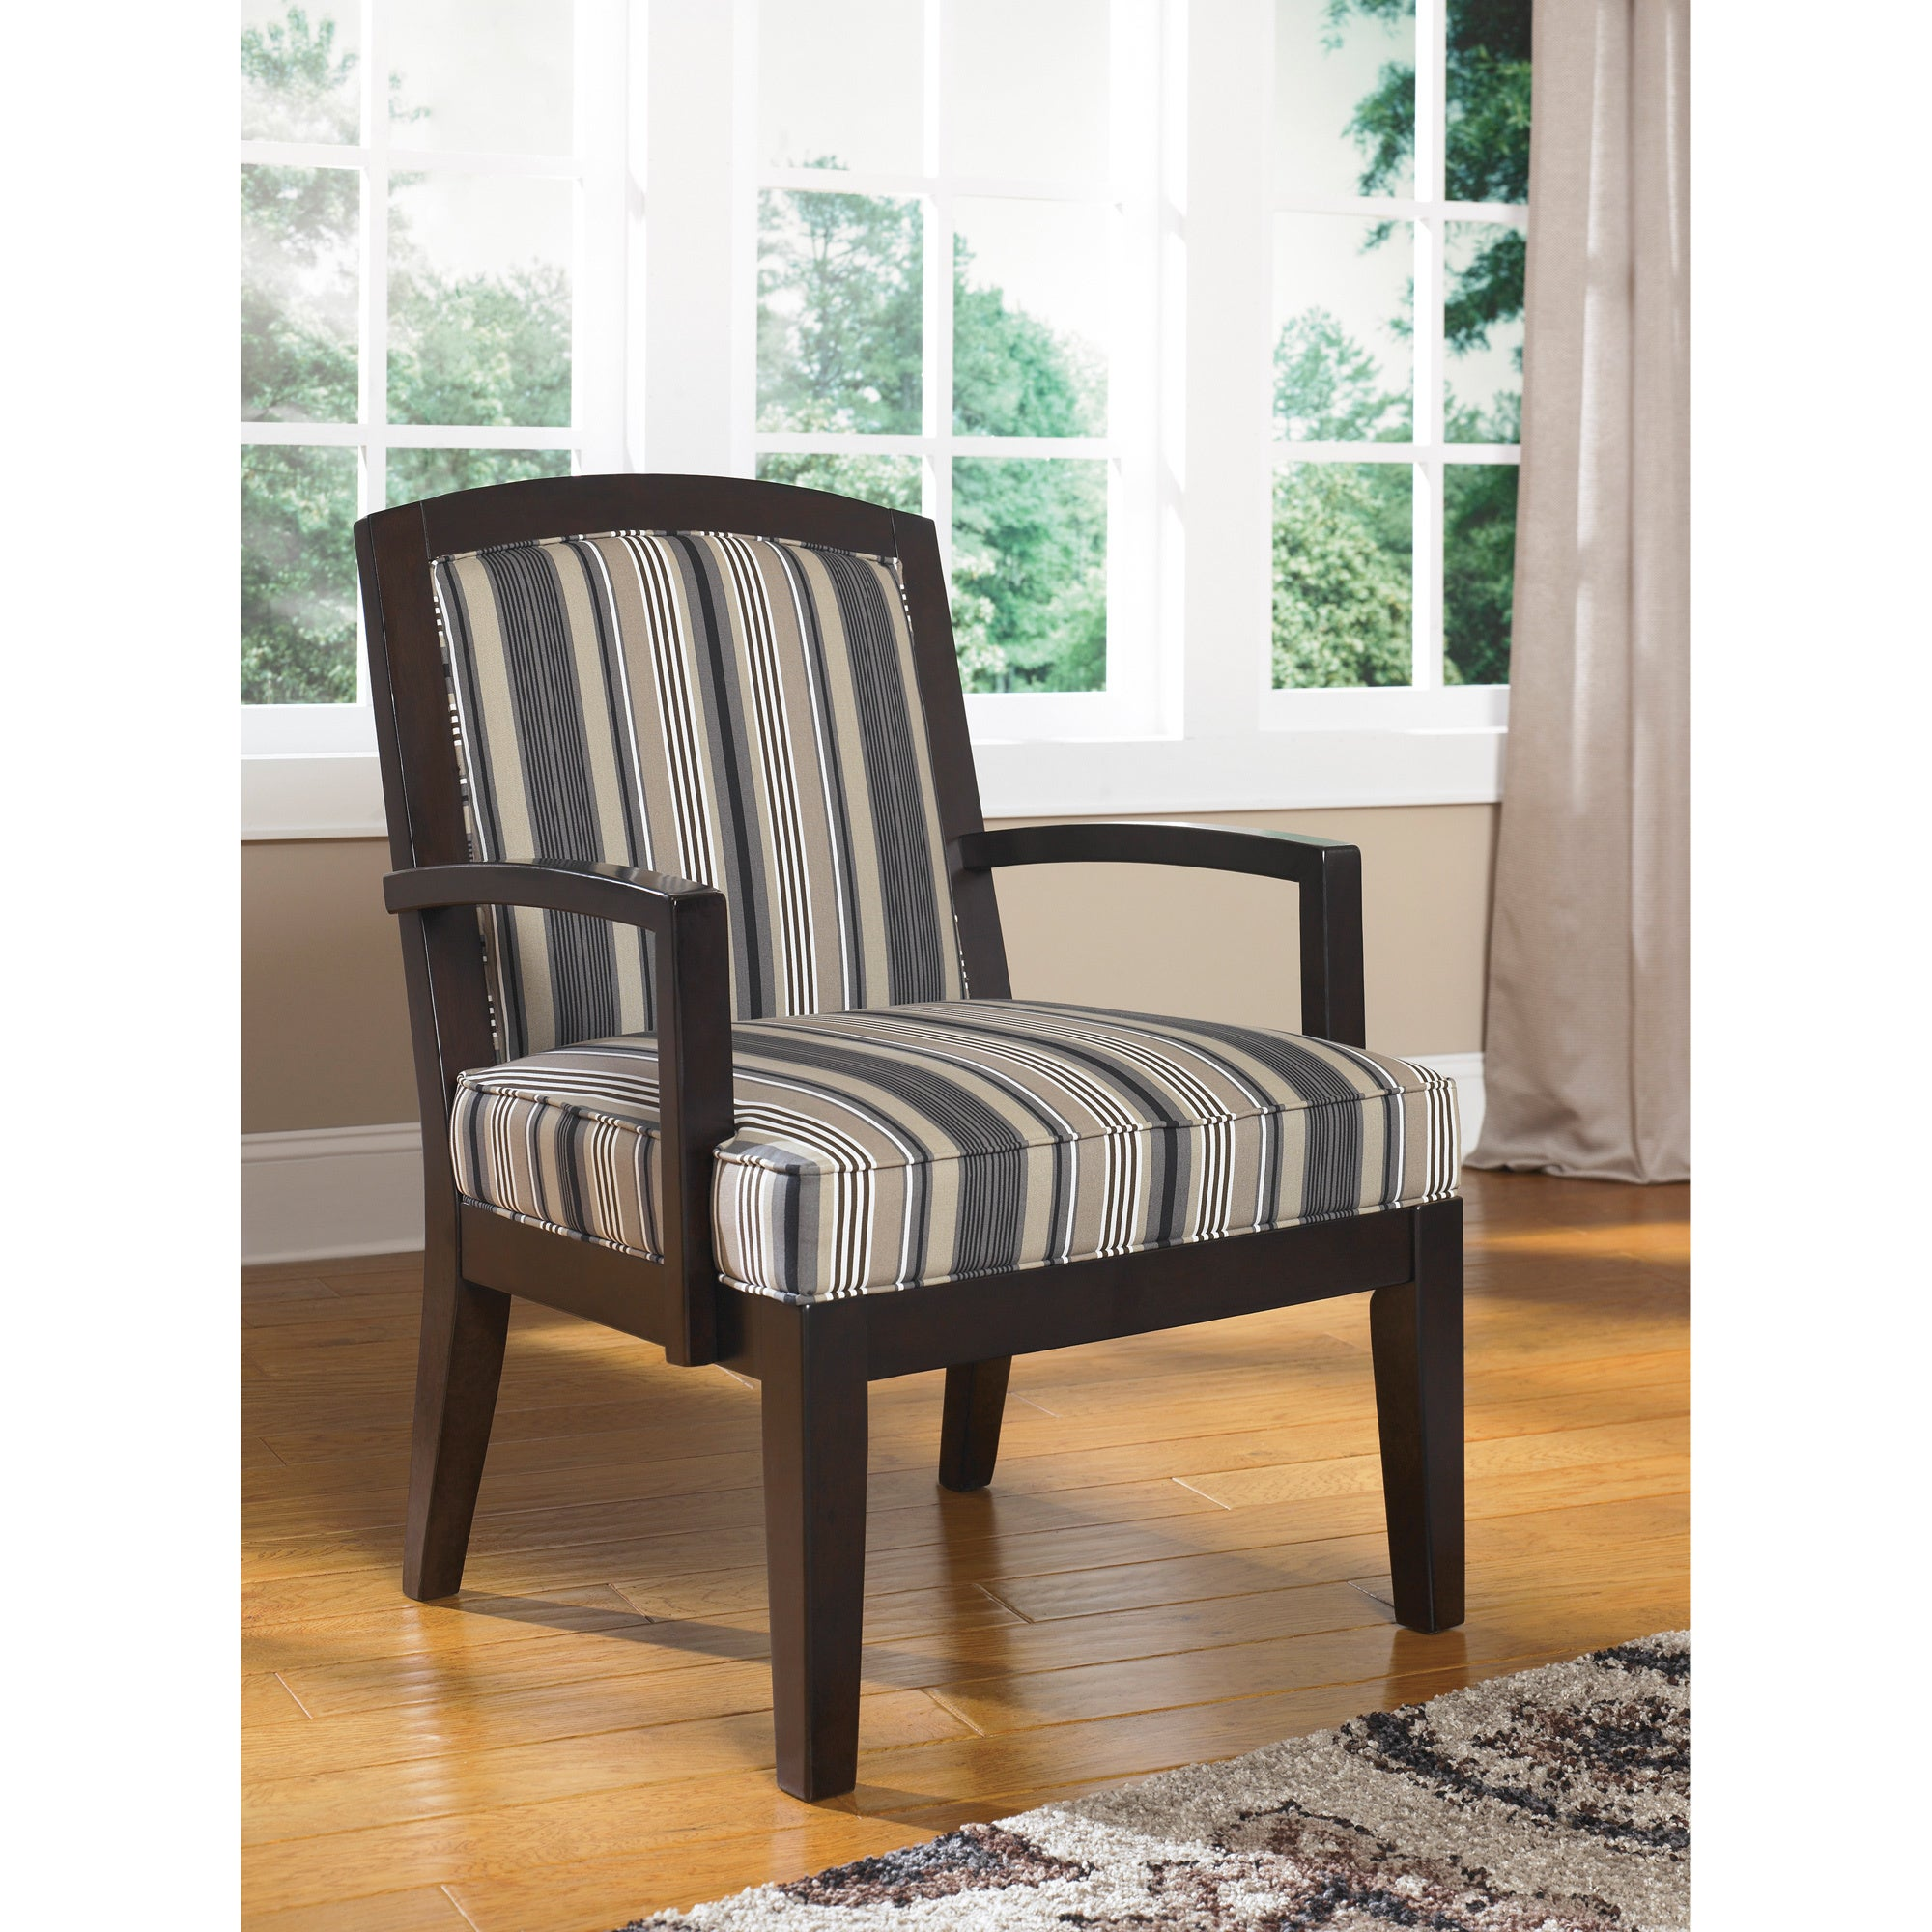 Shop signature design by ashley yvette black showood accent chair free shipping today overstock com 9442486